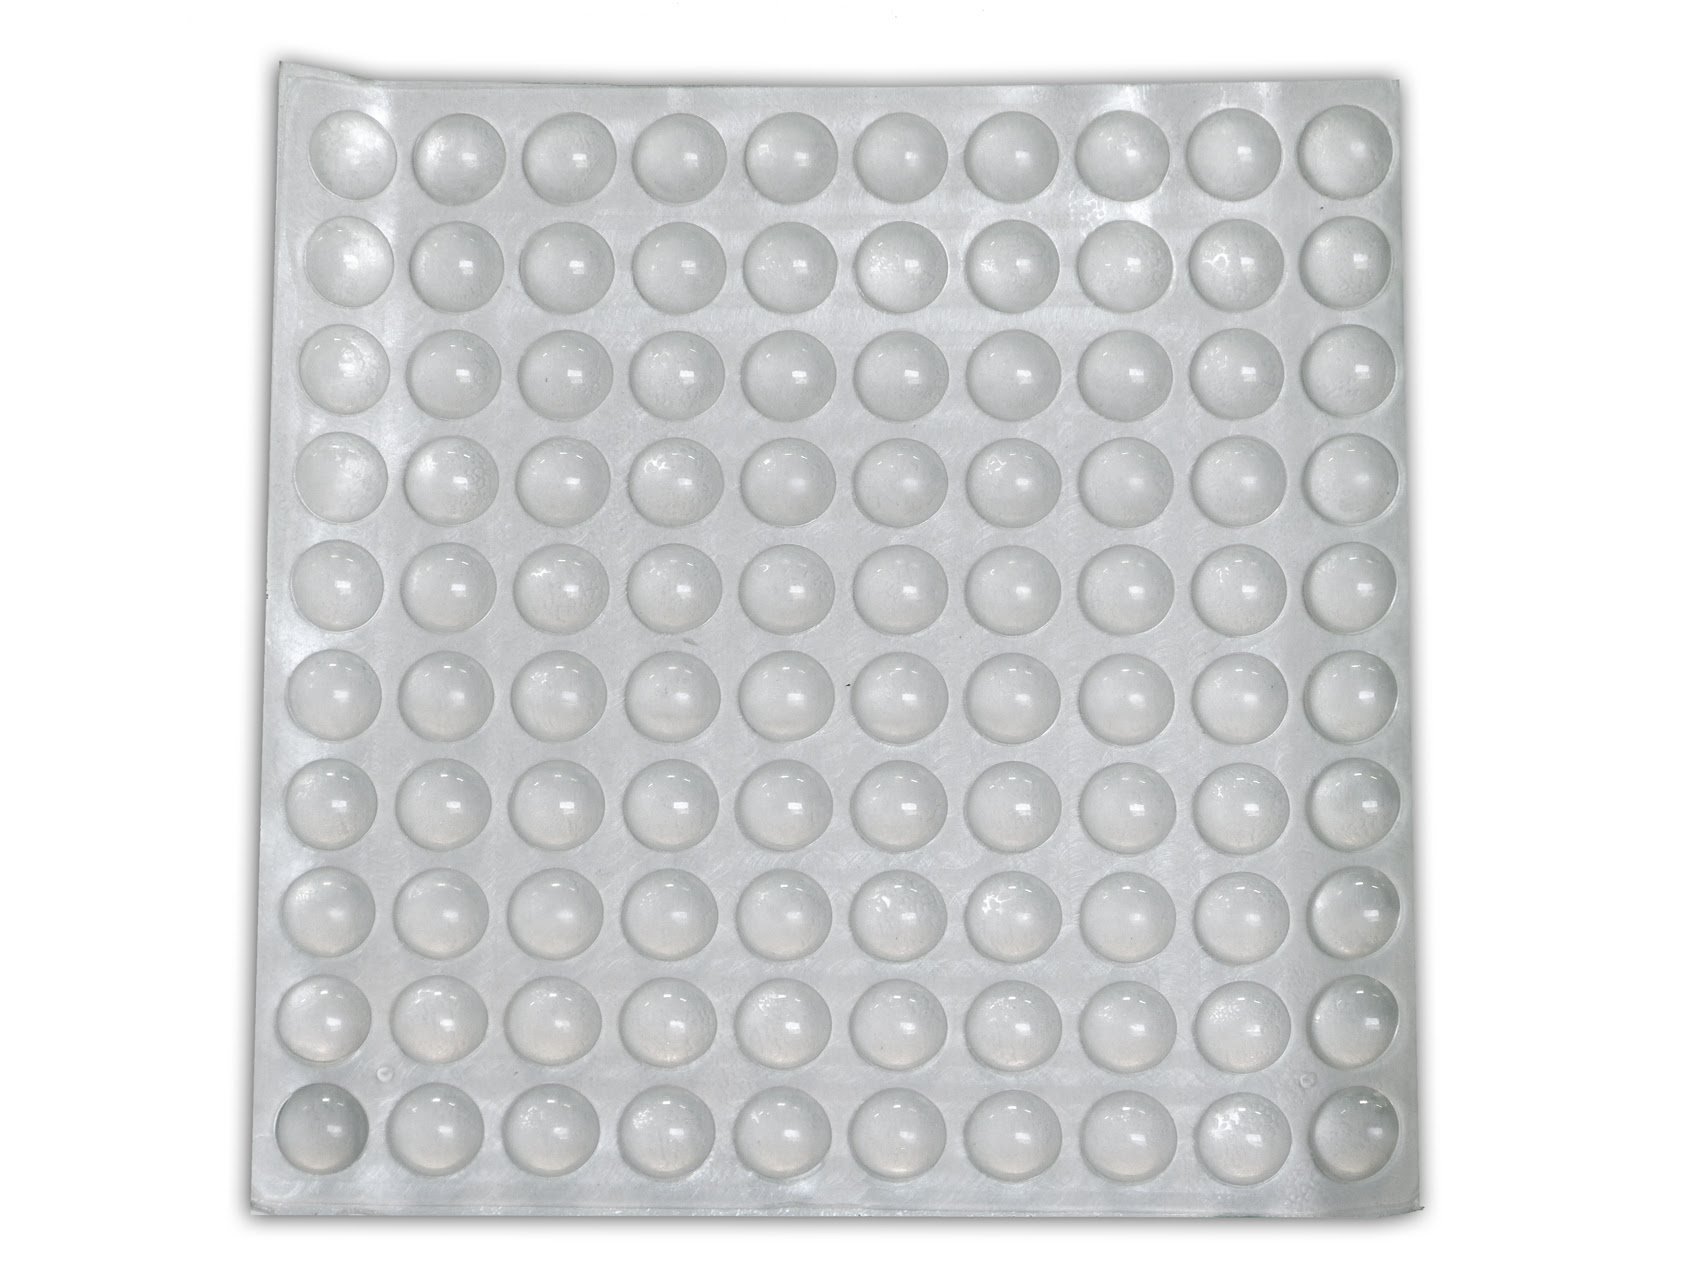 100 3/8 Round Rubber Bumpers Clear Surface Protector Pad ...